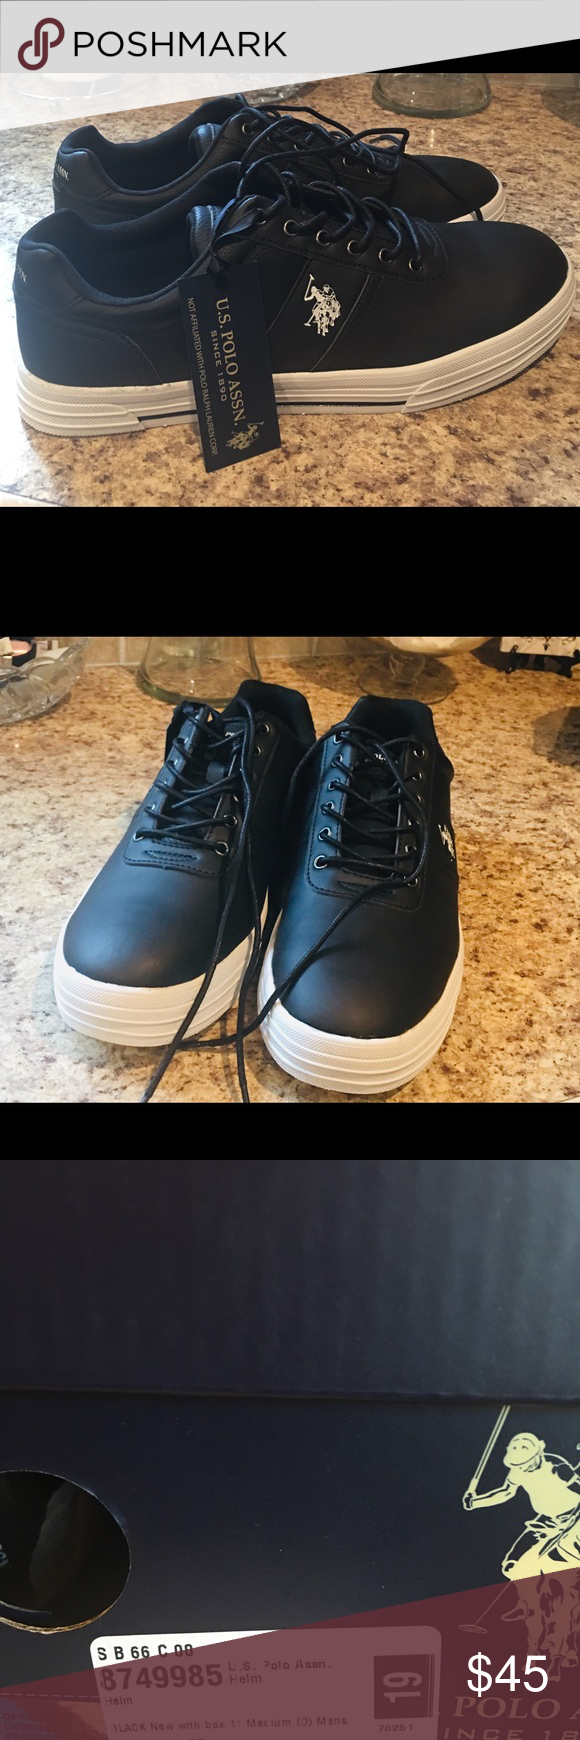 Polo Assn.Mens Black Leather Boat Shoes